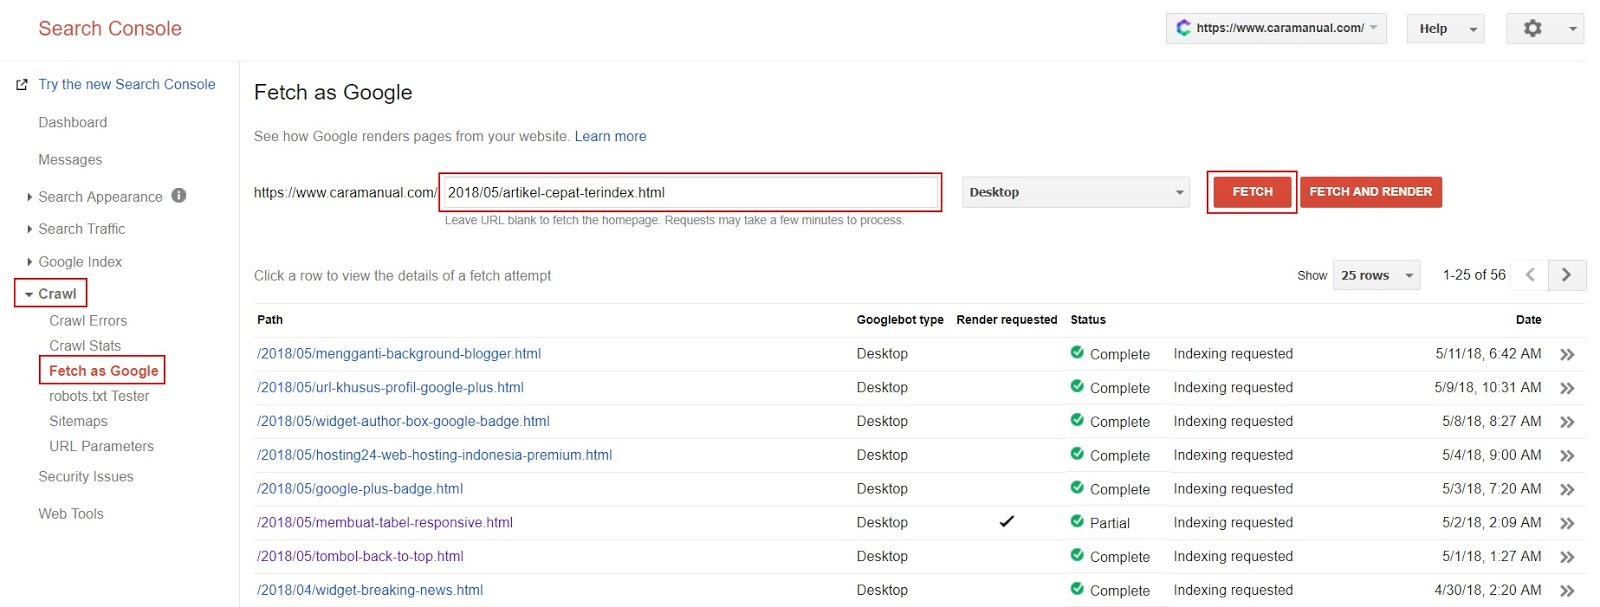 Fetch as Google - Search Console